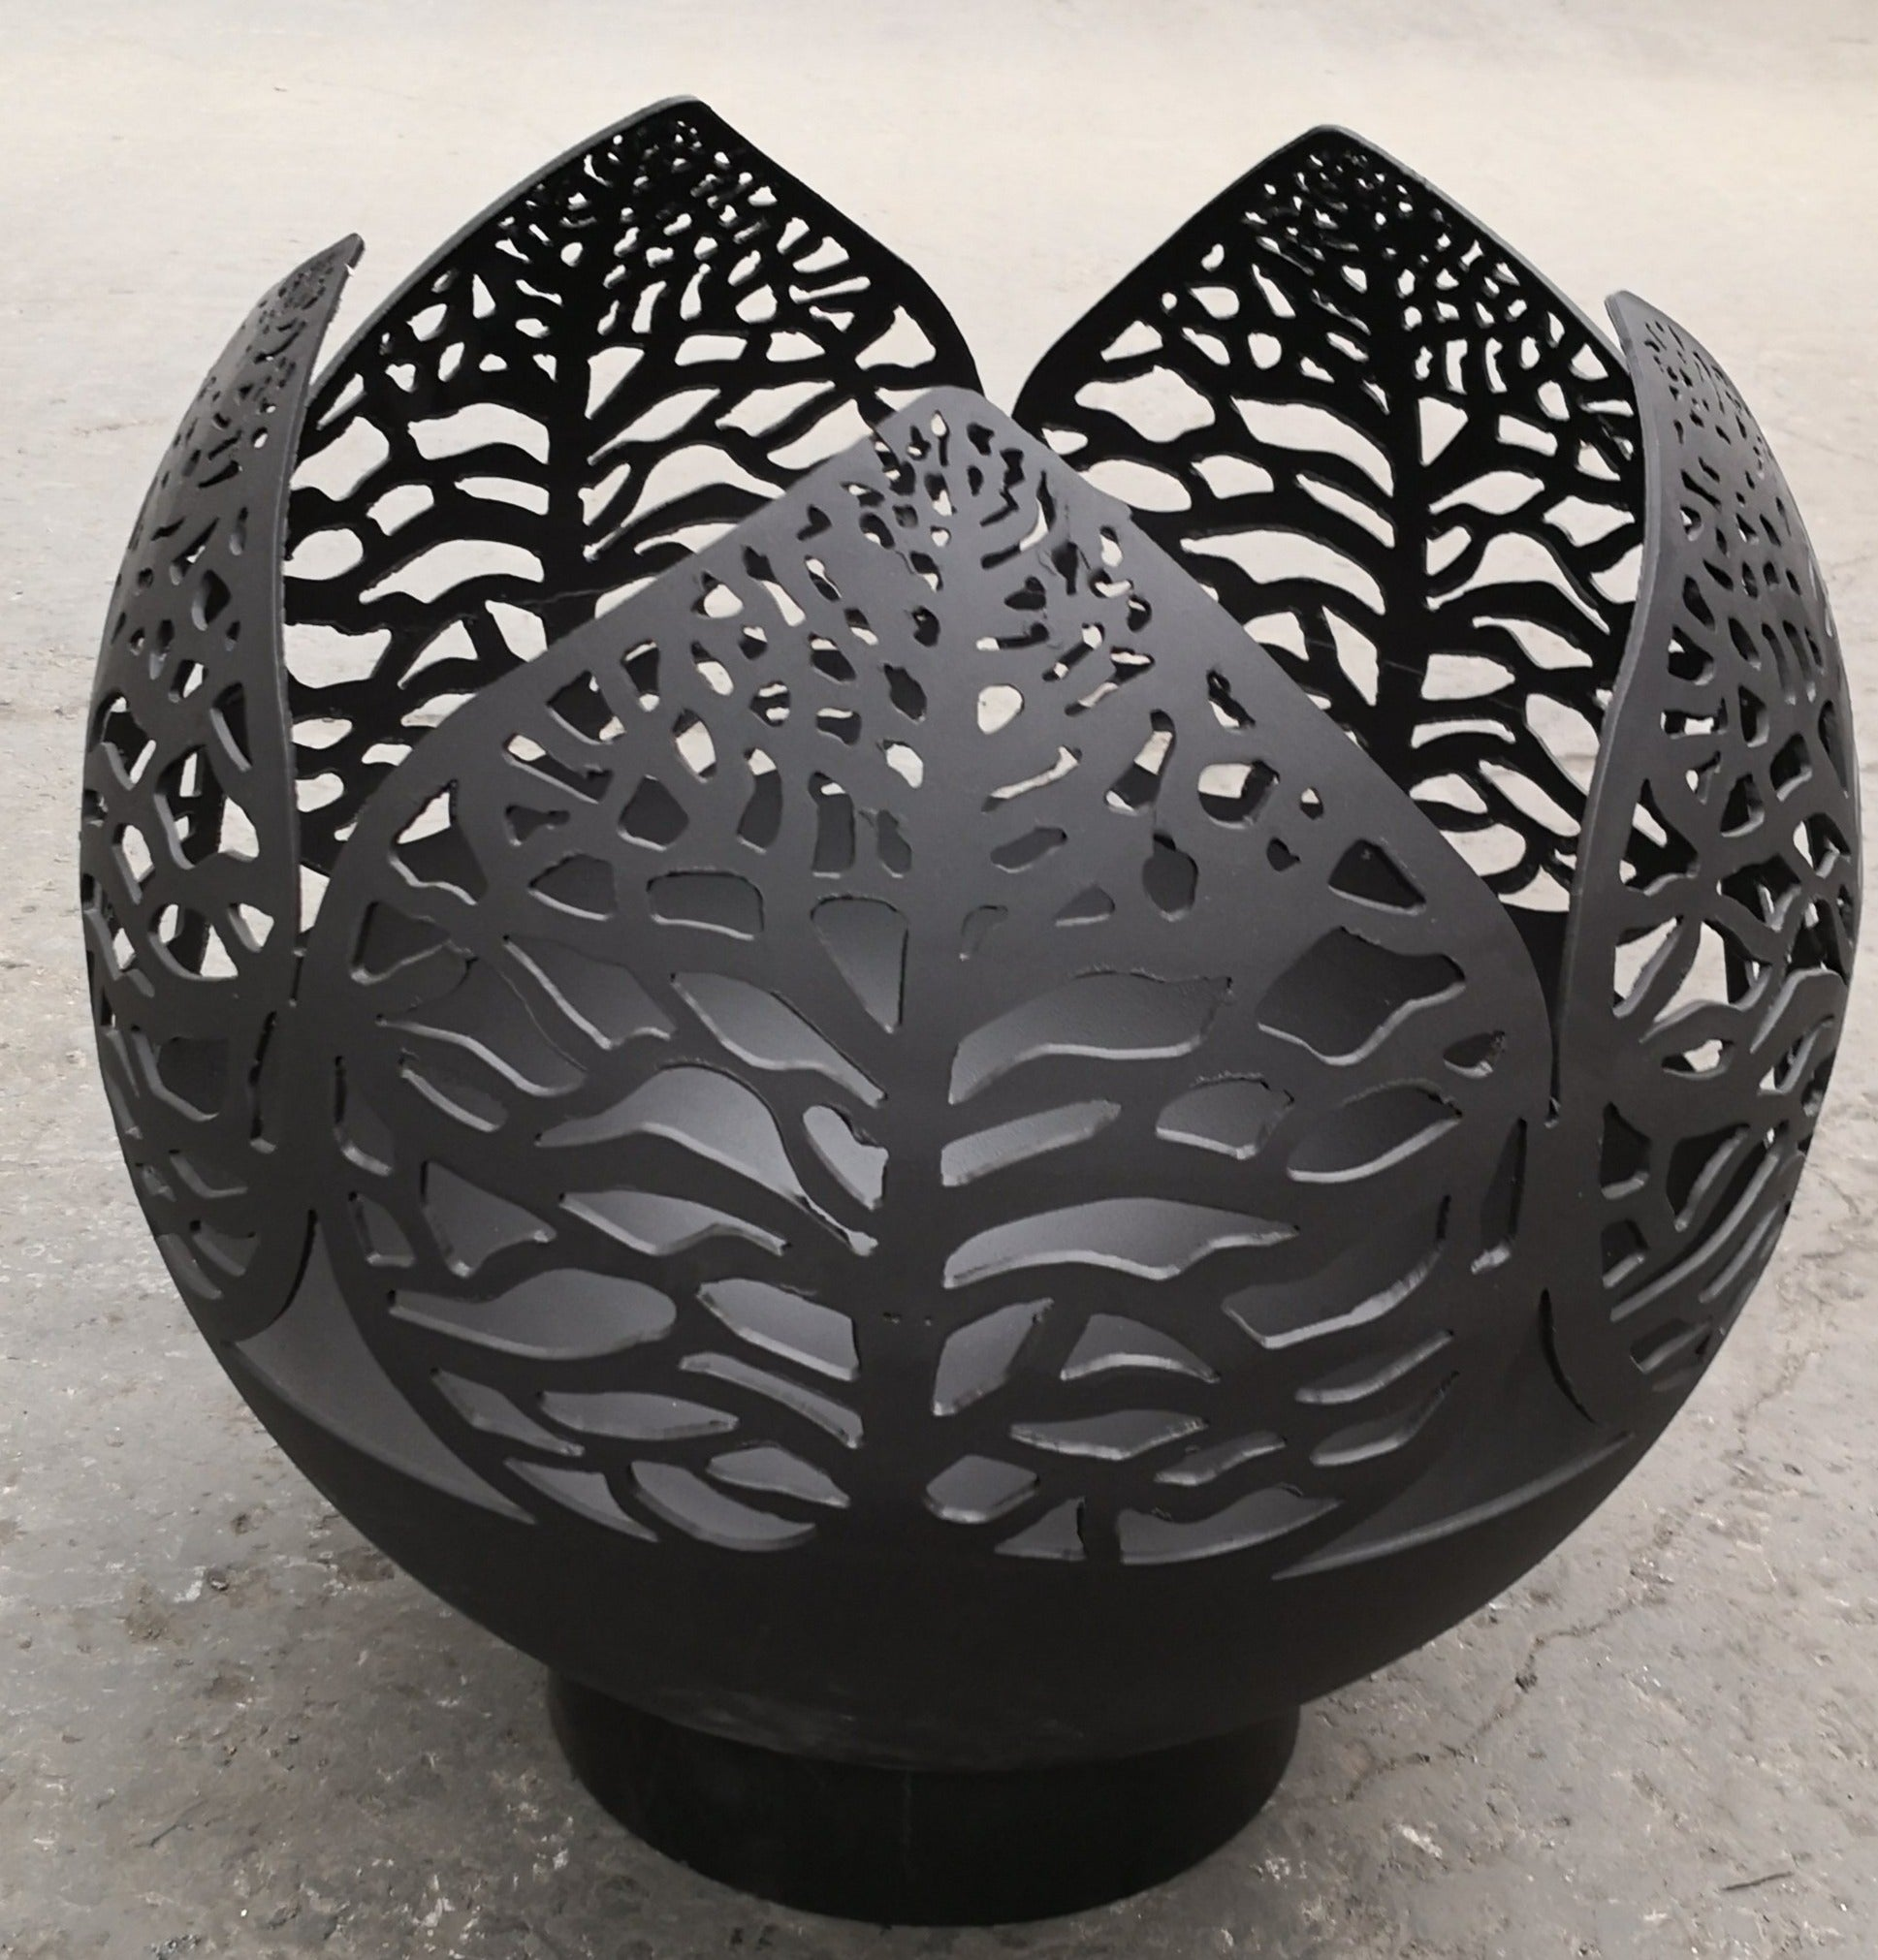 Fern Valley 50cm Fire pit